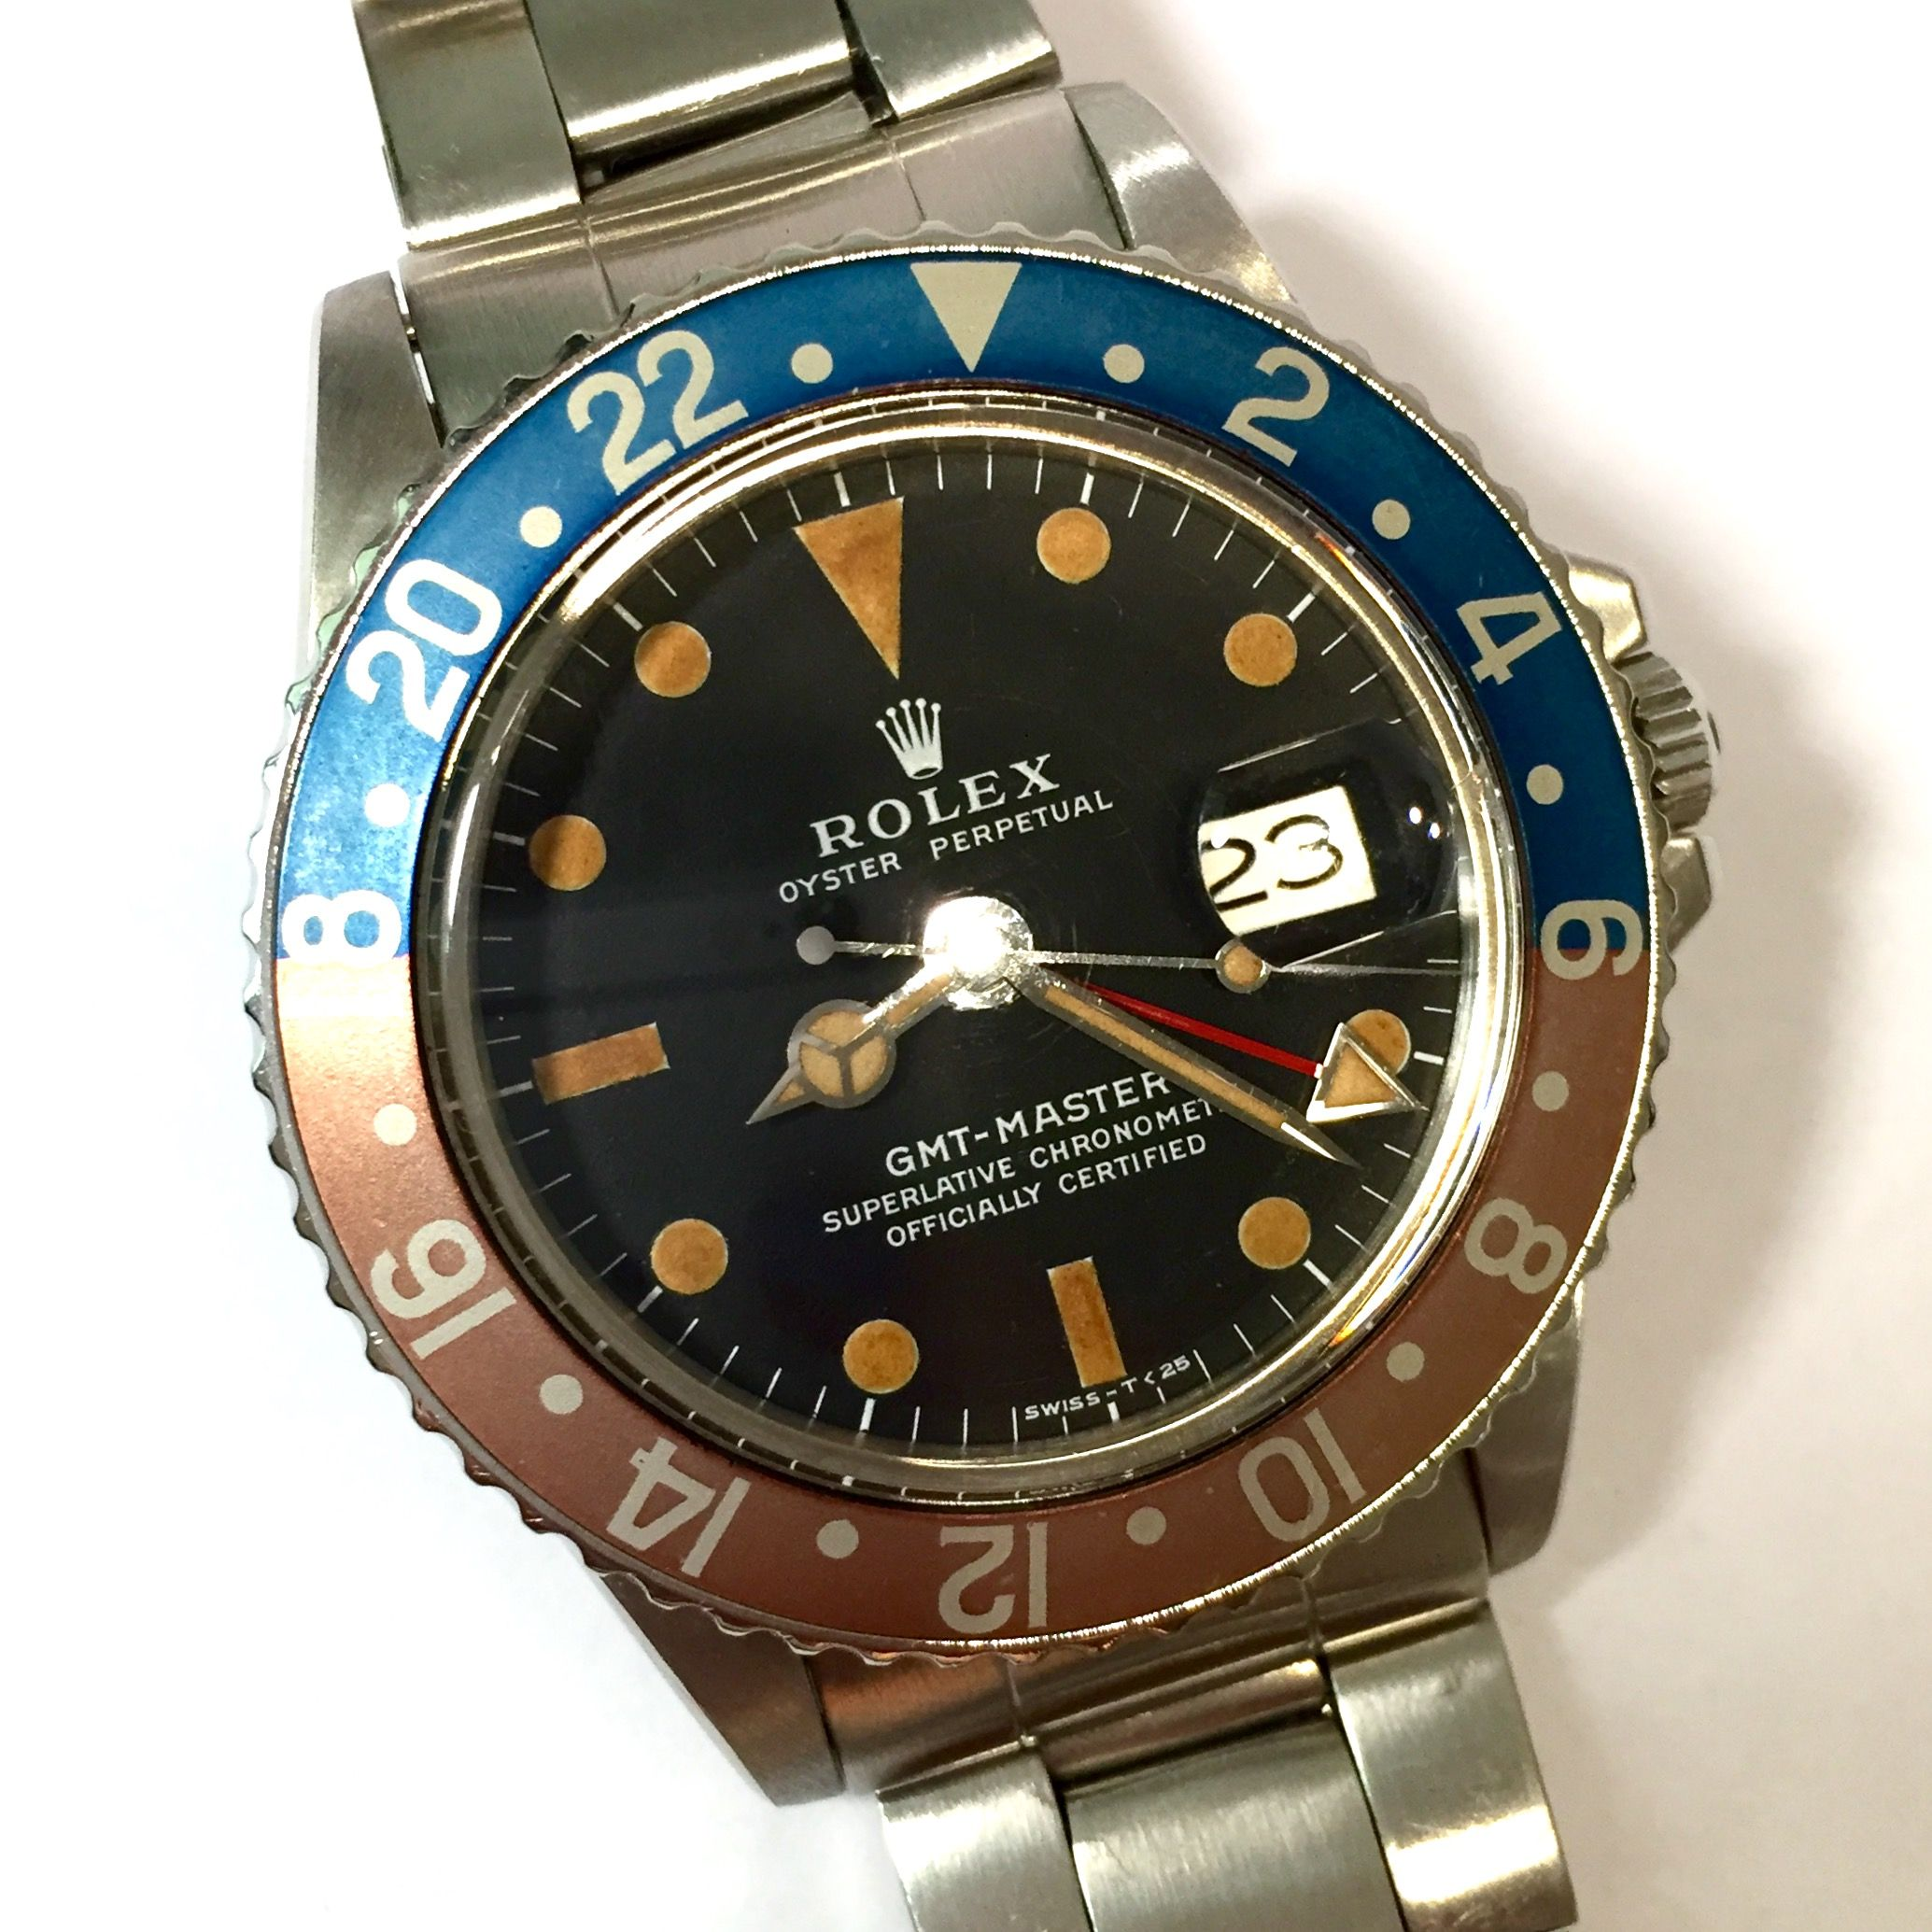 Preowned Rolex GMT Master negotiable PreOwned Authentic